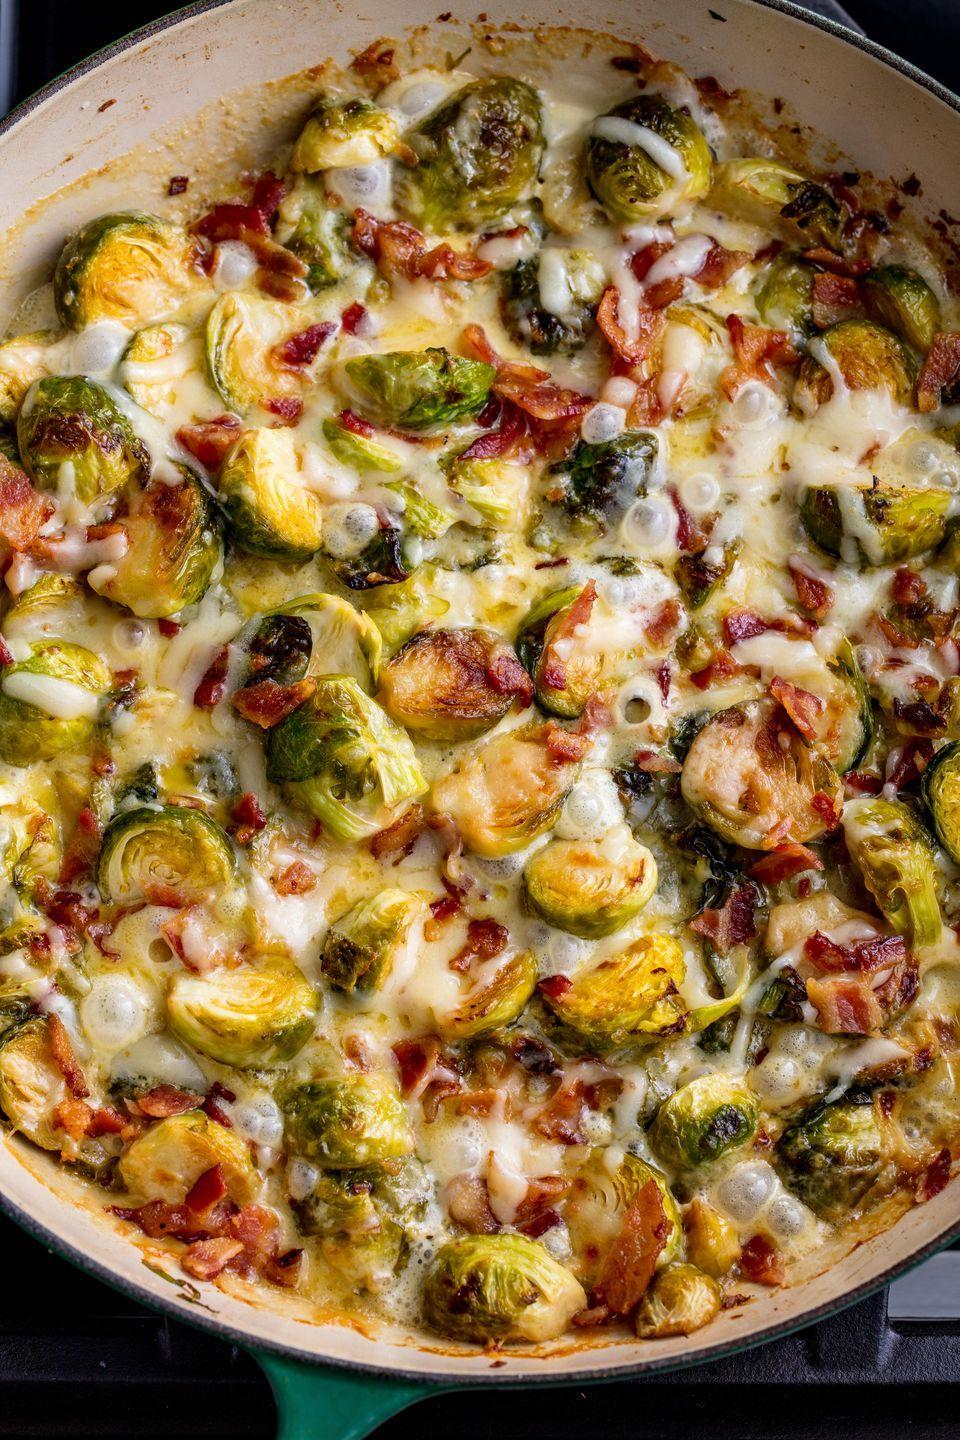 "<p>Cheese, green, bacon...it couldn't be a more perfect side for St. Patrick's Day.</p><p>Get the recipe from <a href=""https://www.delish.com/holiday-recipes/thanksgiving/recipes/a44632/cheesy-brussels-sprout-casserole-recipe/"" rel=""nofollow noopener"" target=""_blank"" data-ylk=""slk:Delish"" class=""link rapid-noclick-resp"">Delish</a>.</p>"